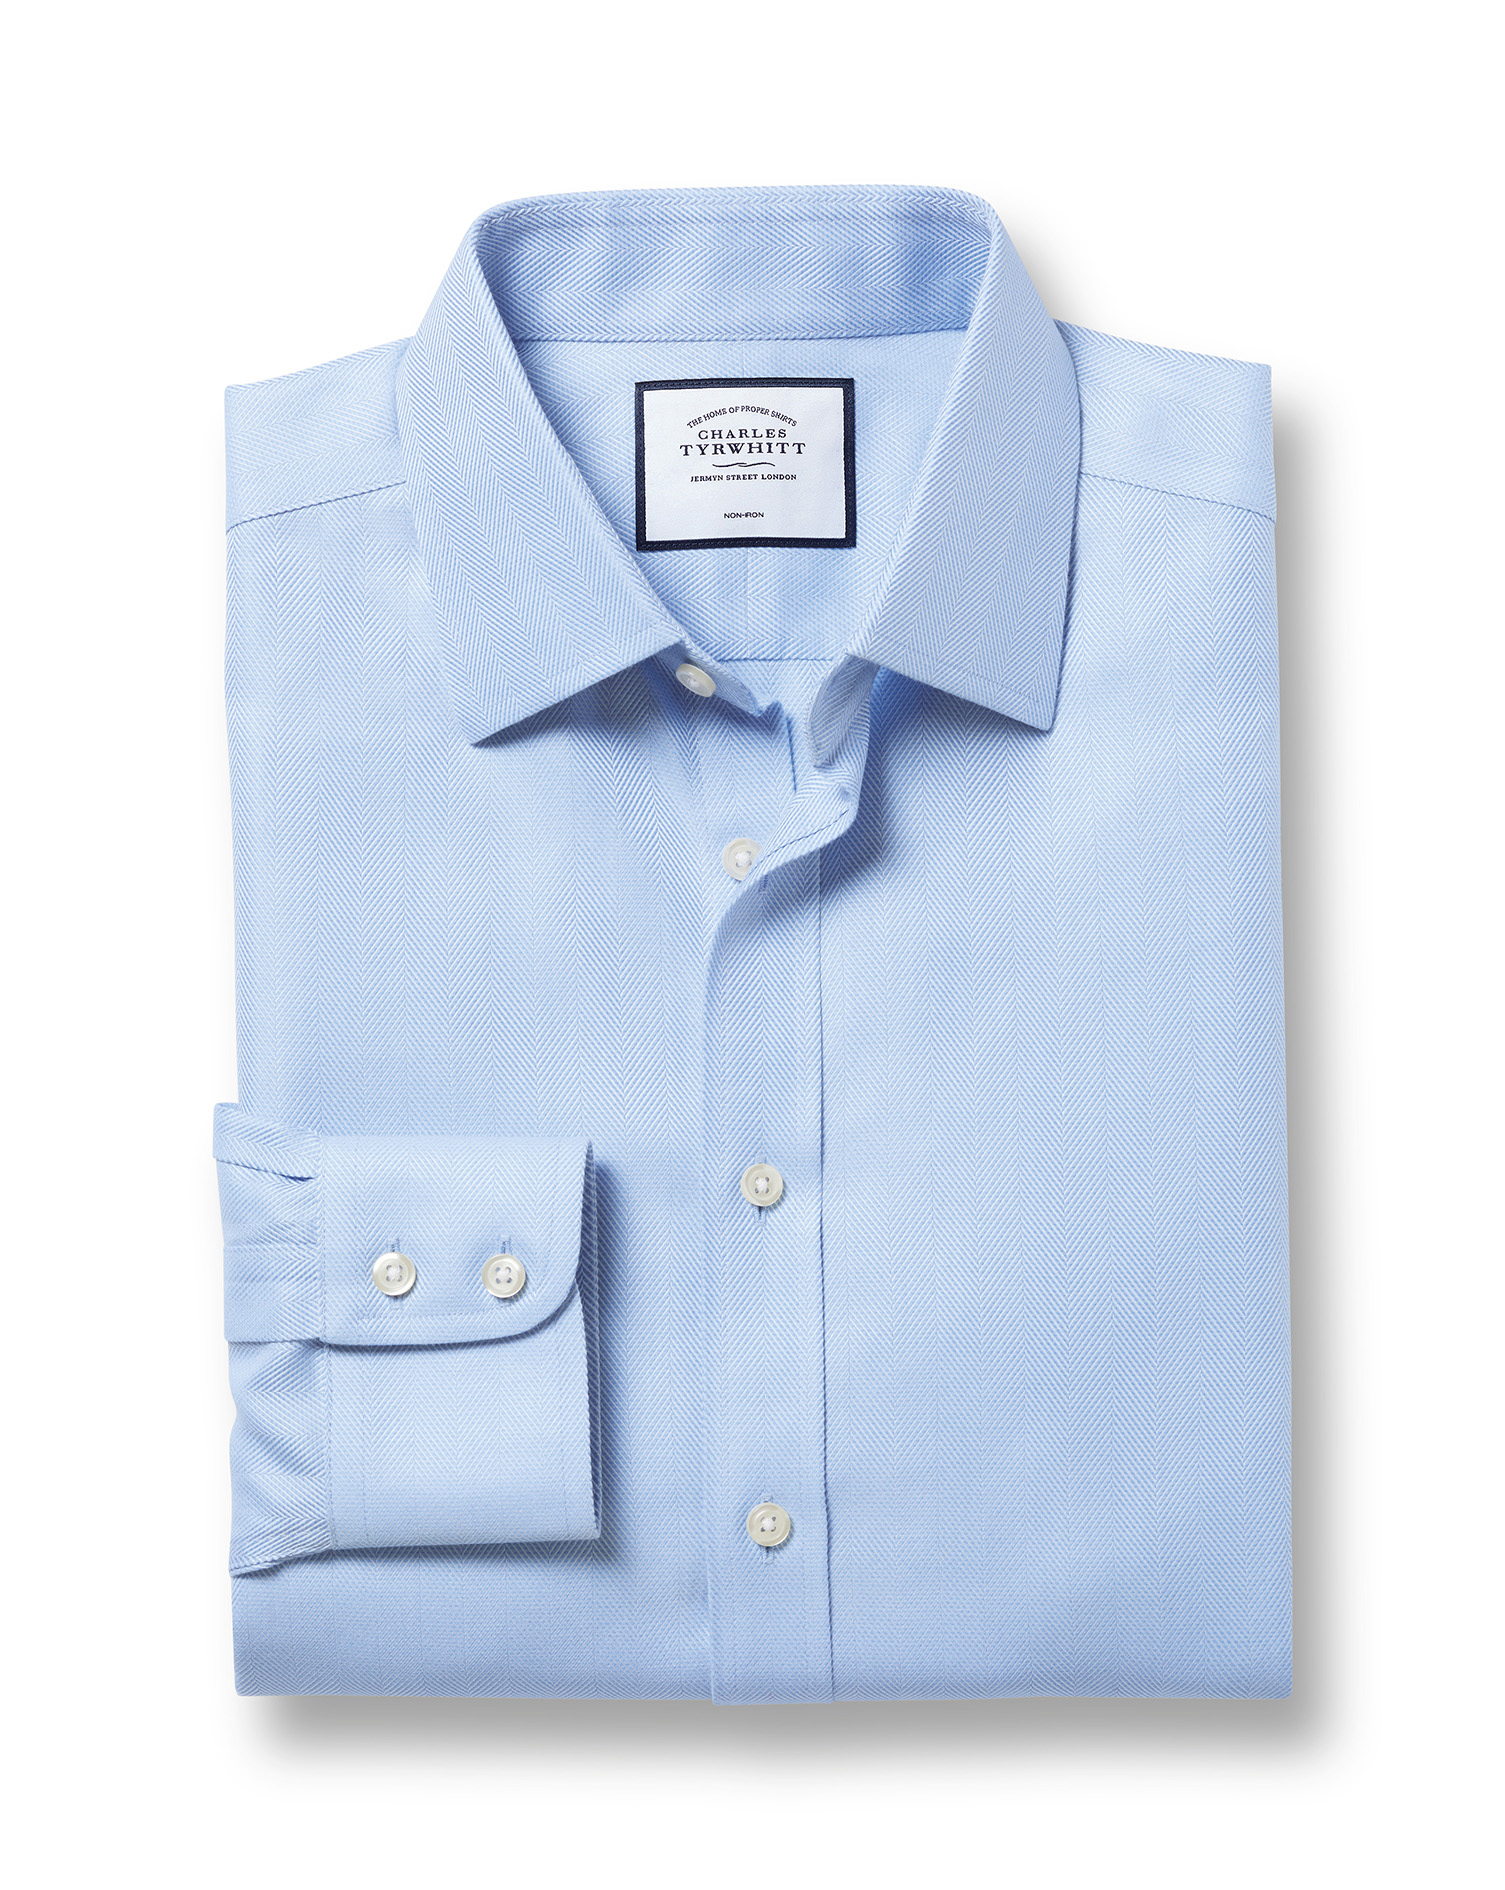 Classic Fit Non-Iron Herringbone Sky Blue Cotton Formal Shirt Double Cuff Size 16.5/36 by Charles Ty